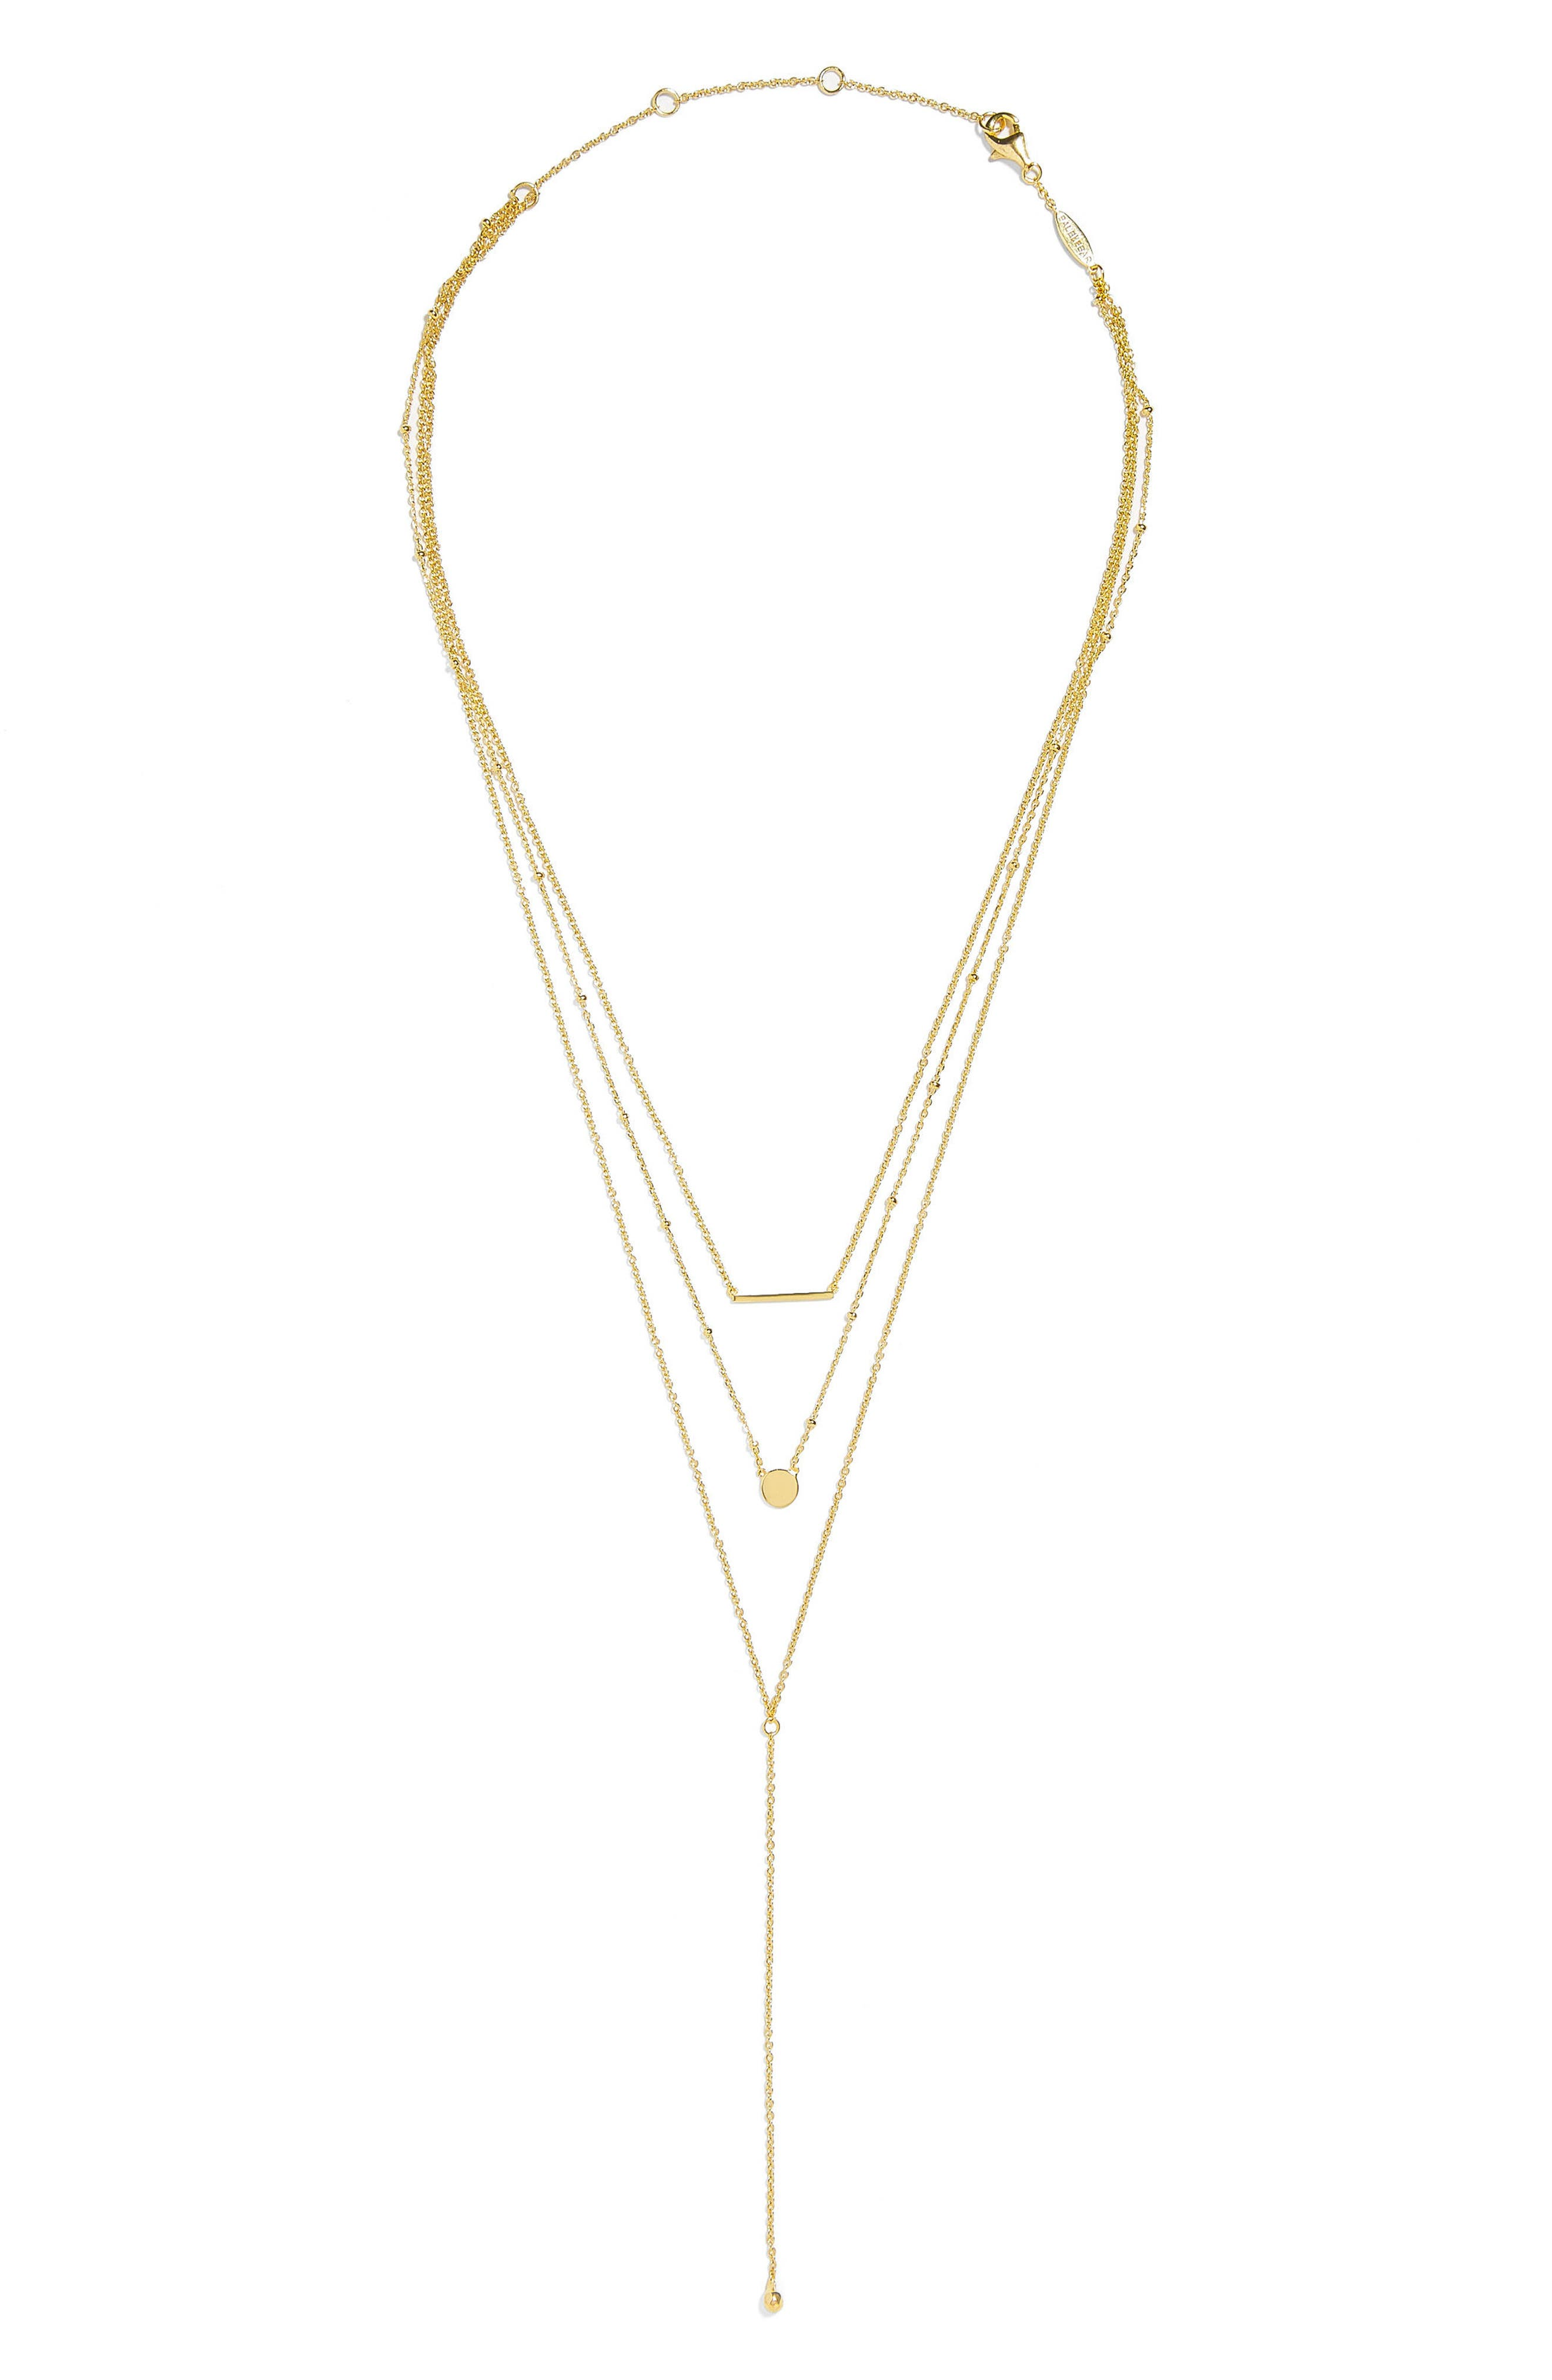 Viva Everyday Fine Layered Pendant Necklace,                             Main thumbnail 1, color,                             Gold